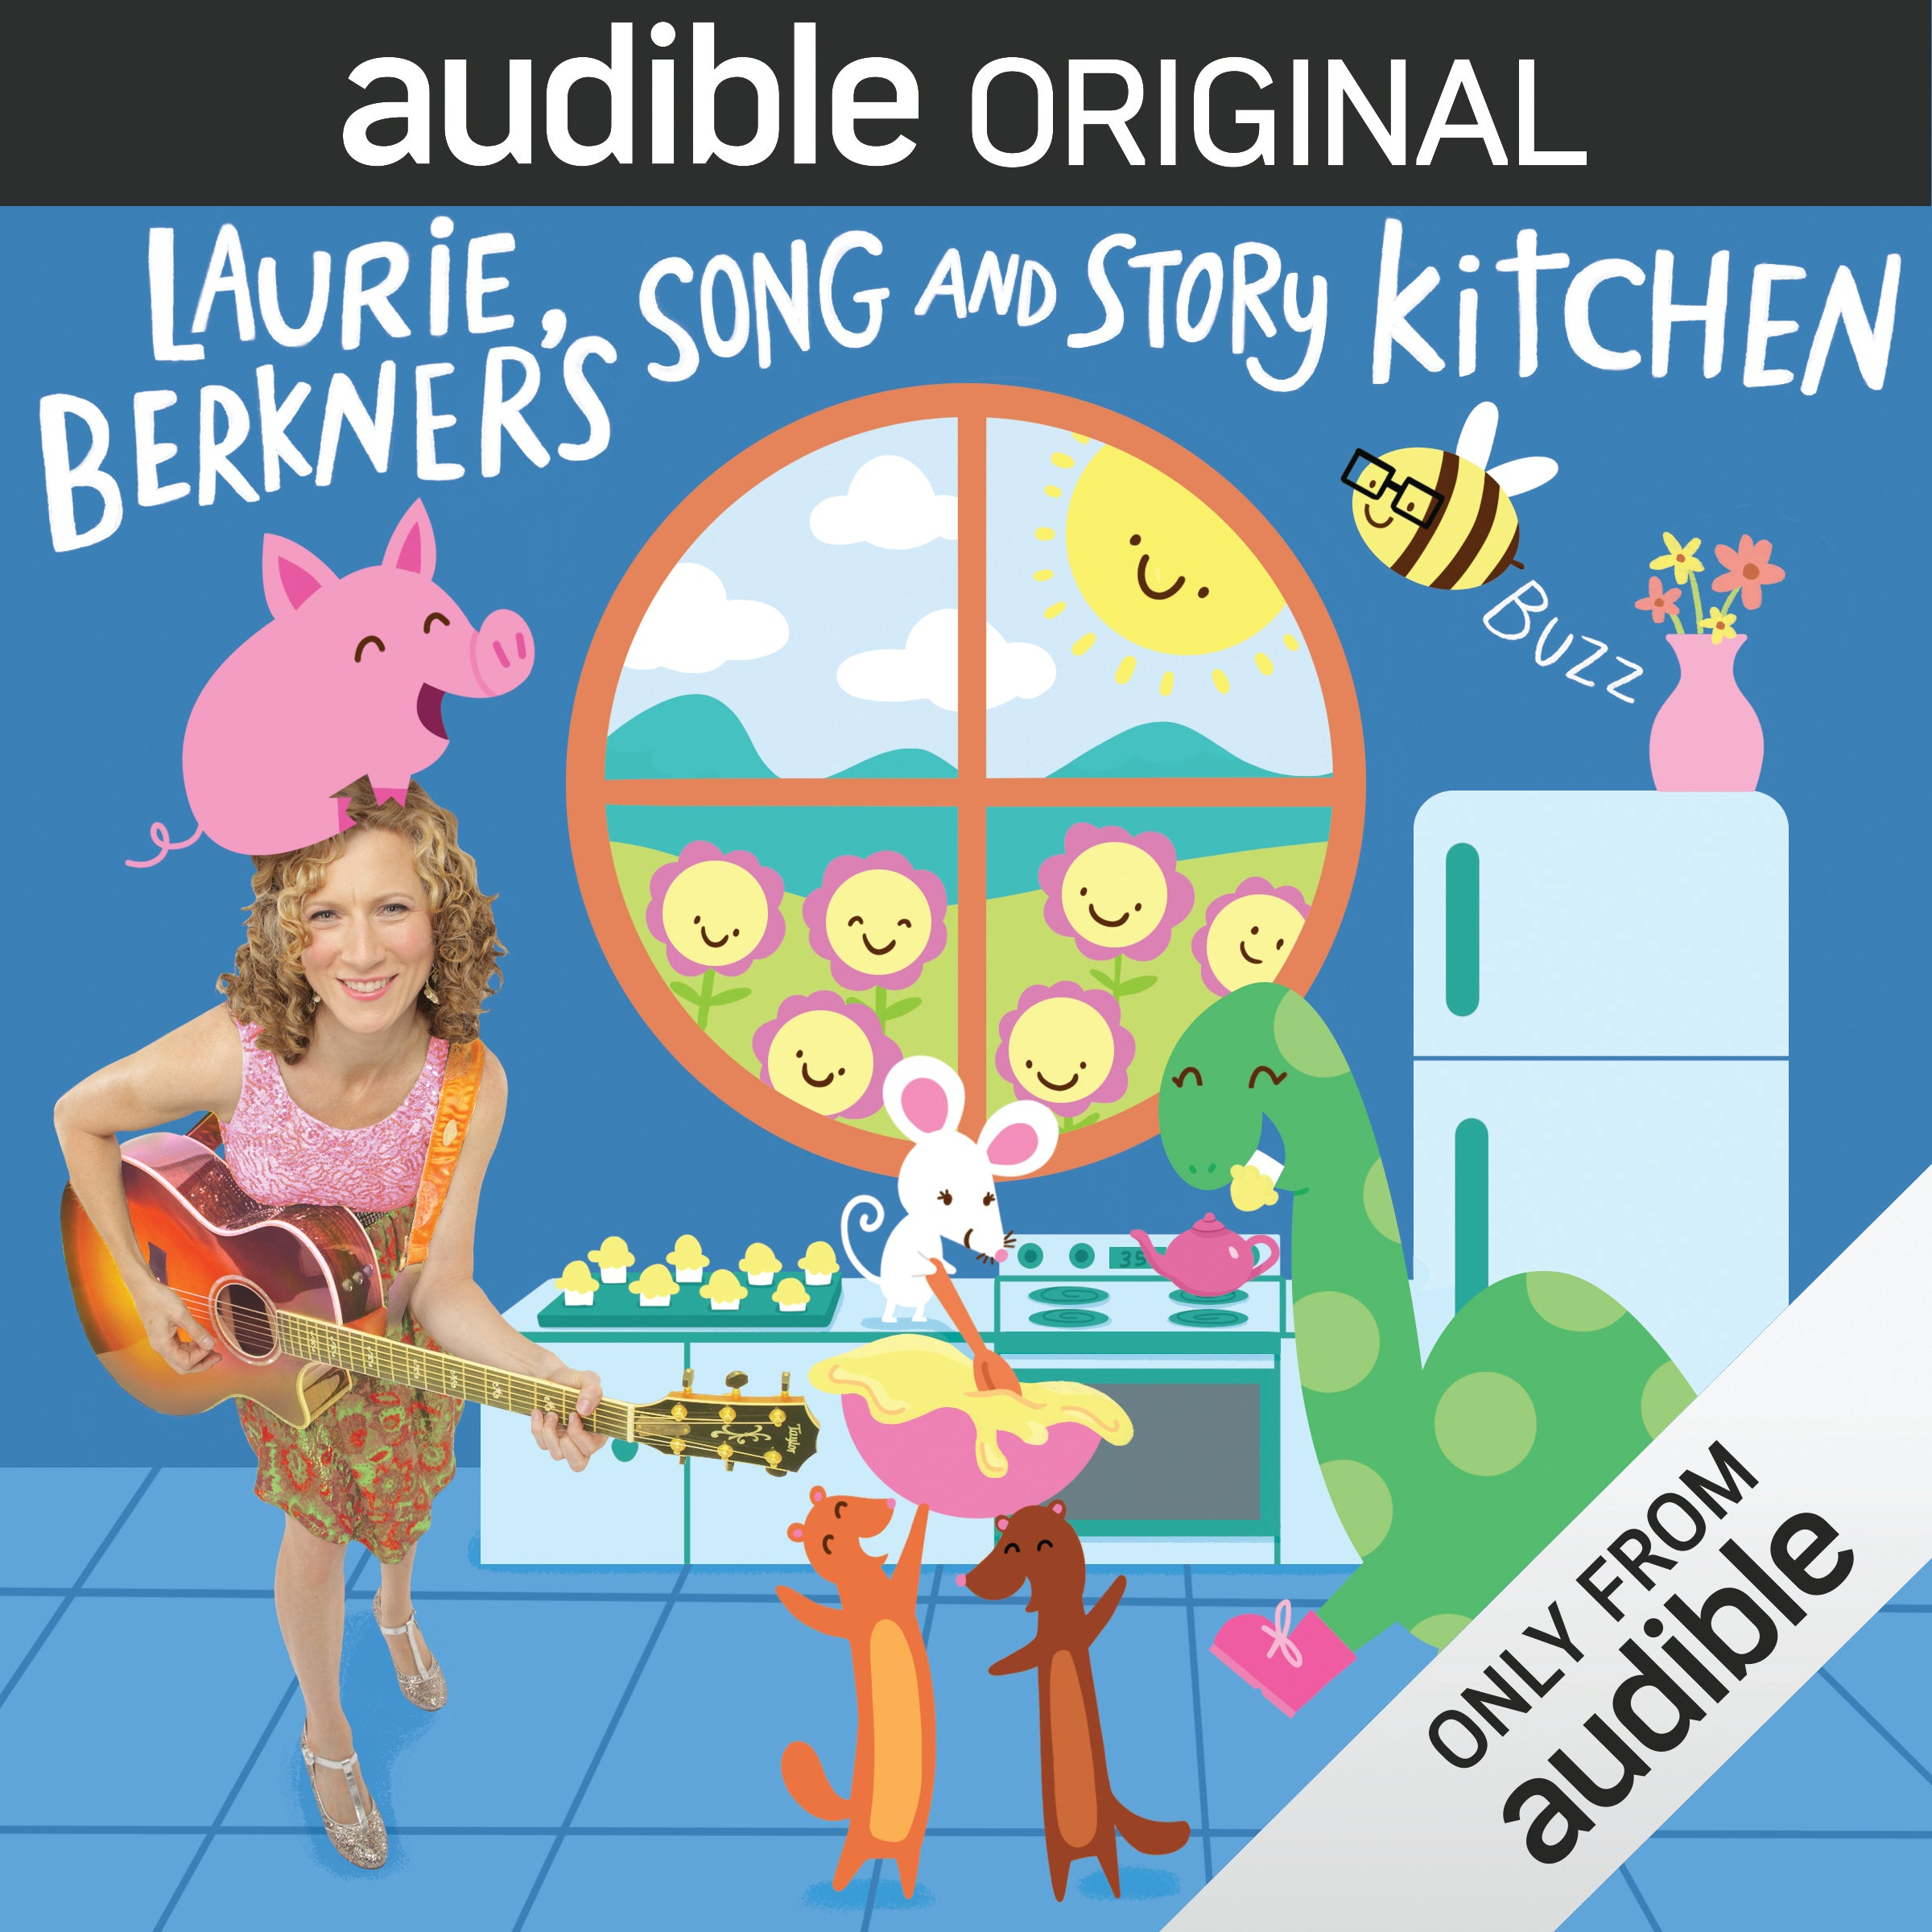 Audible Original: Laurie Berkner's Song and Story Kitchen, Season 1. 5 CD set with 10 episodes